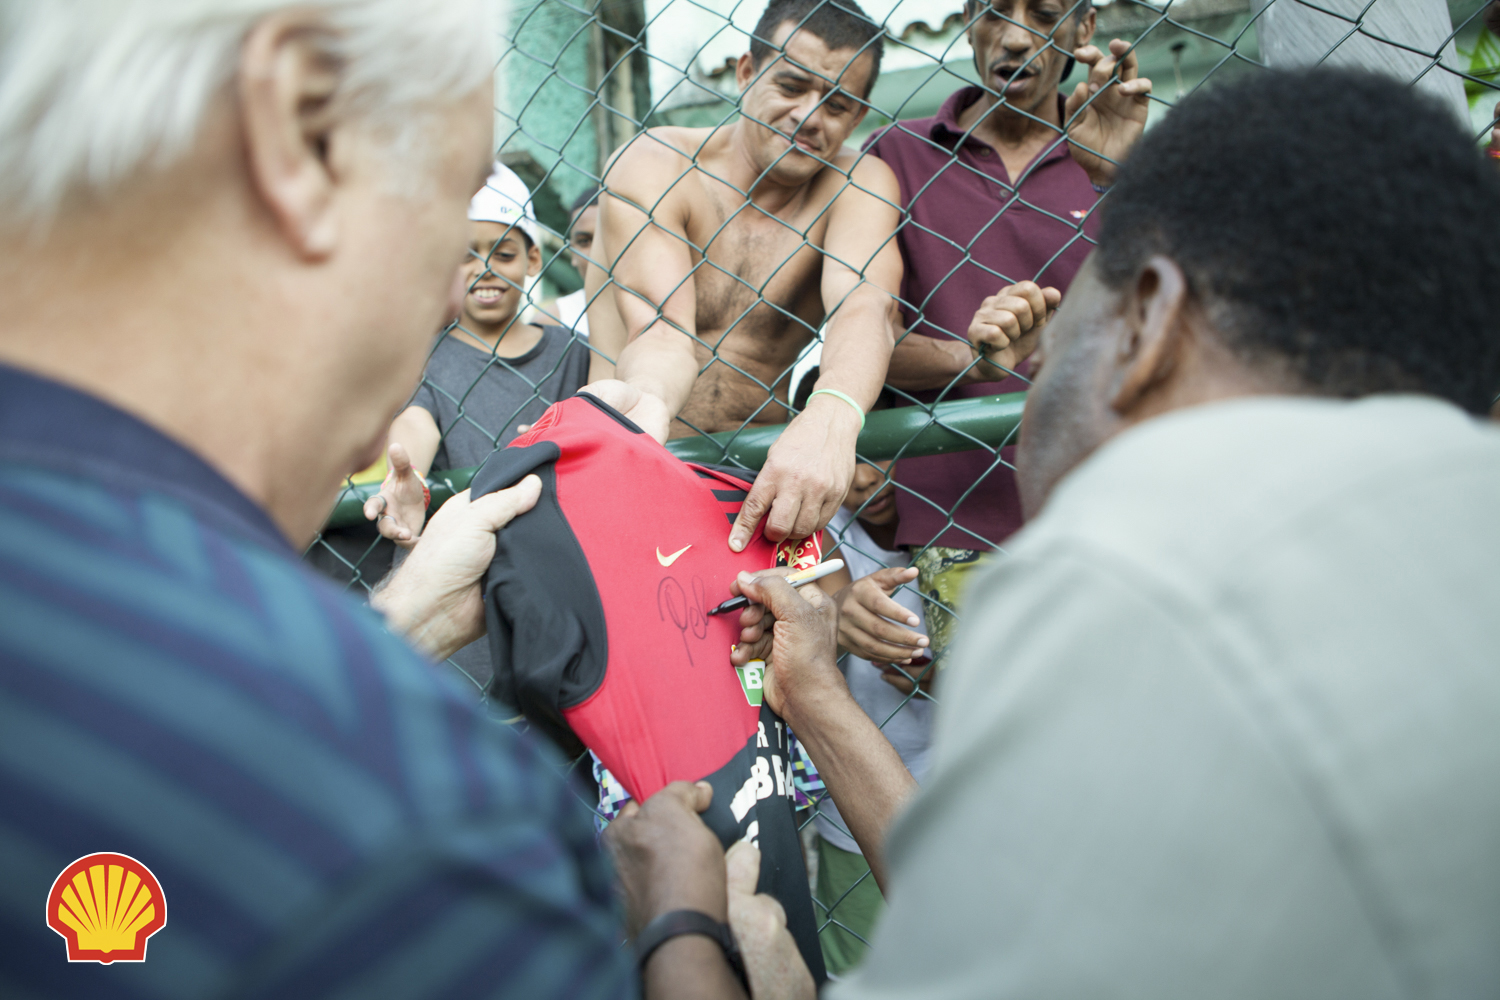 Series of photographs covering a new project from Shell at one of the most dangerous favelas in Rio de Janeiro, Brazil.